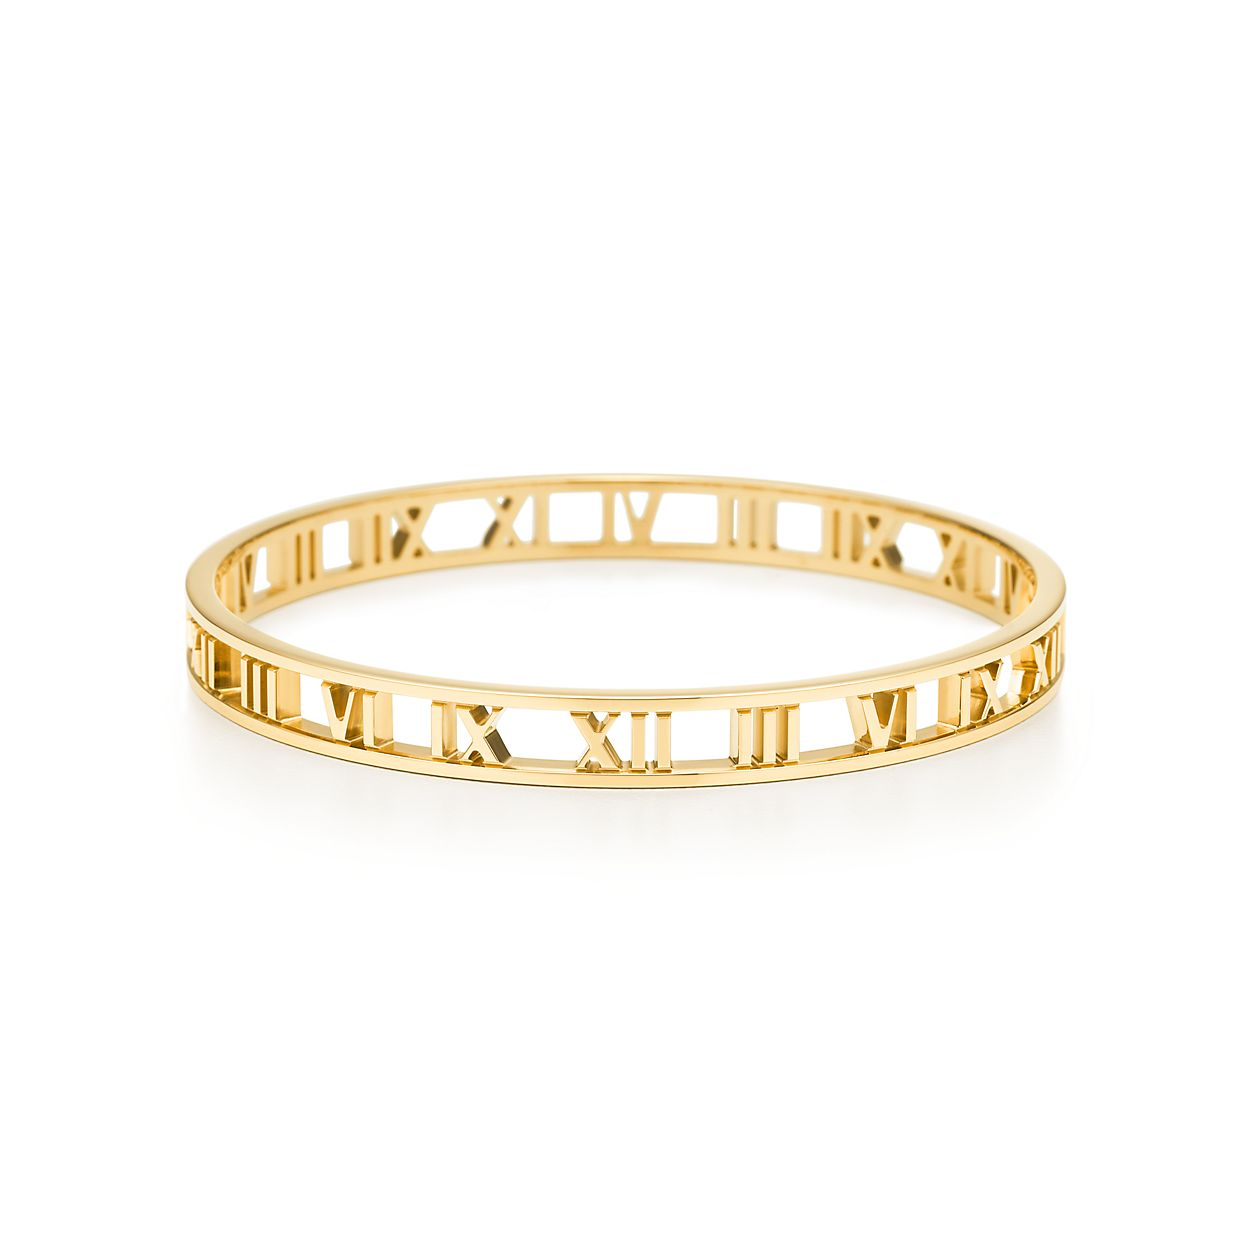 shop open dsc next jewellery hania bangle previous gold bangles